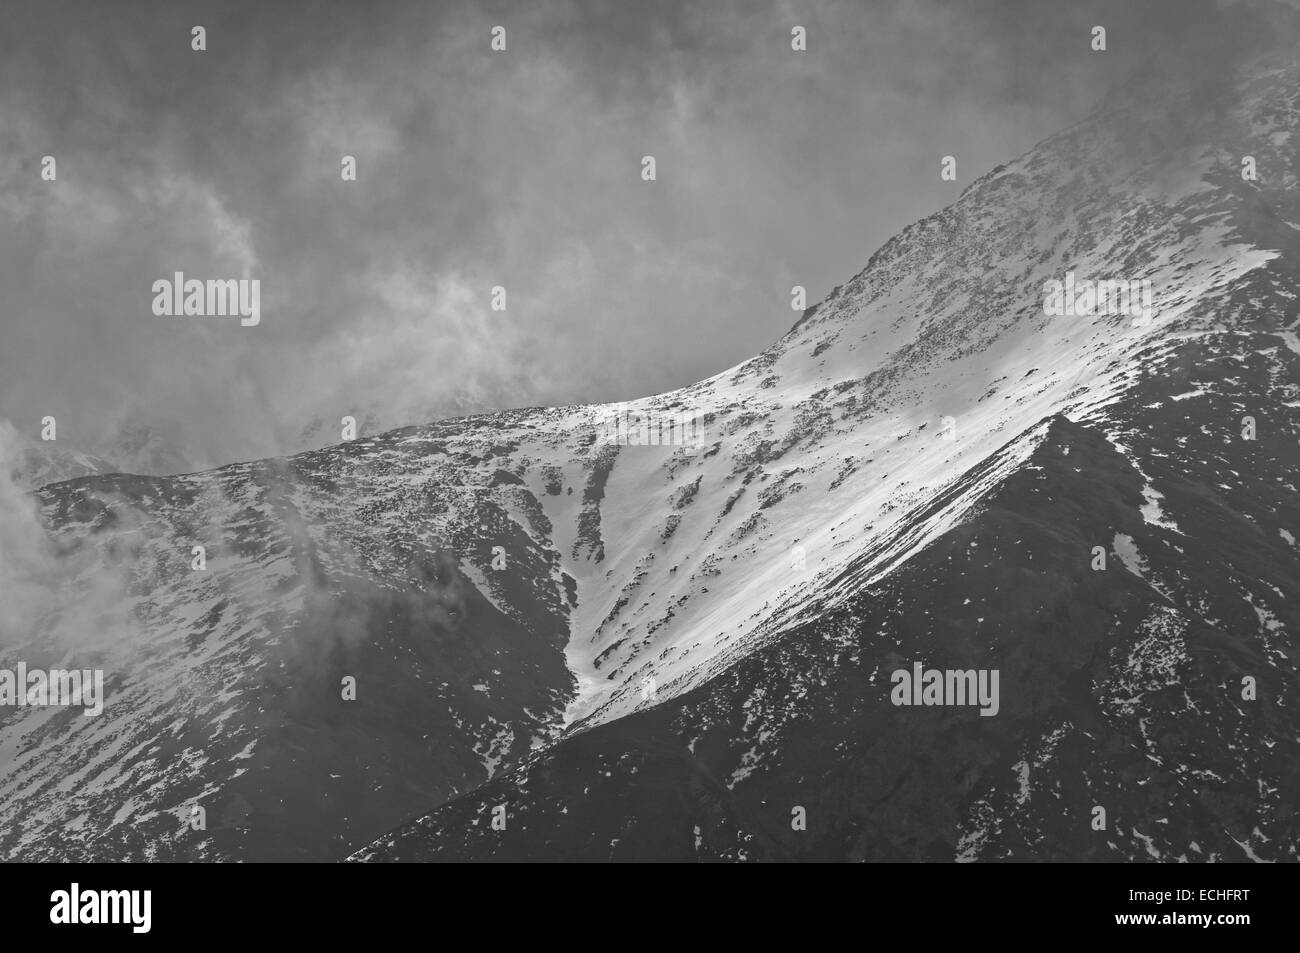 mighty mountains - Stock Image